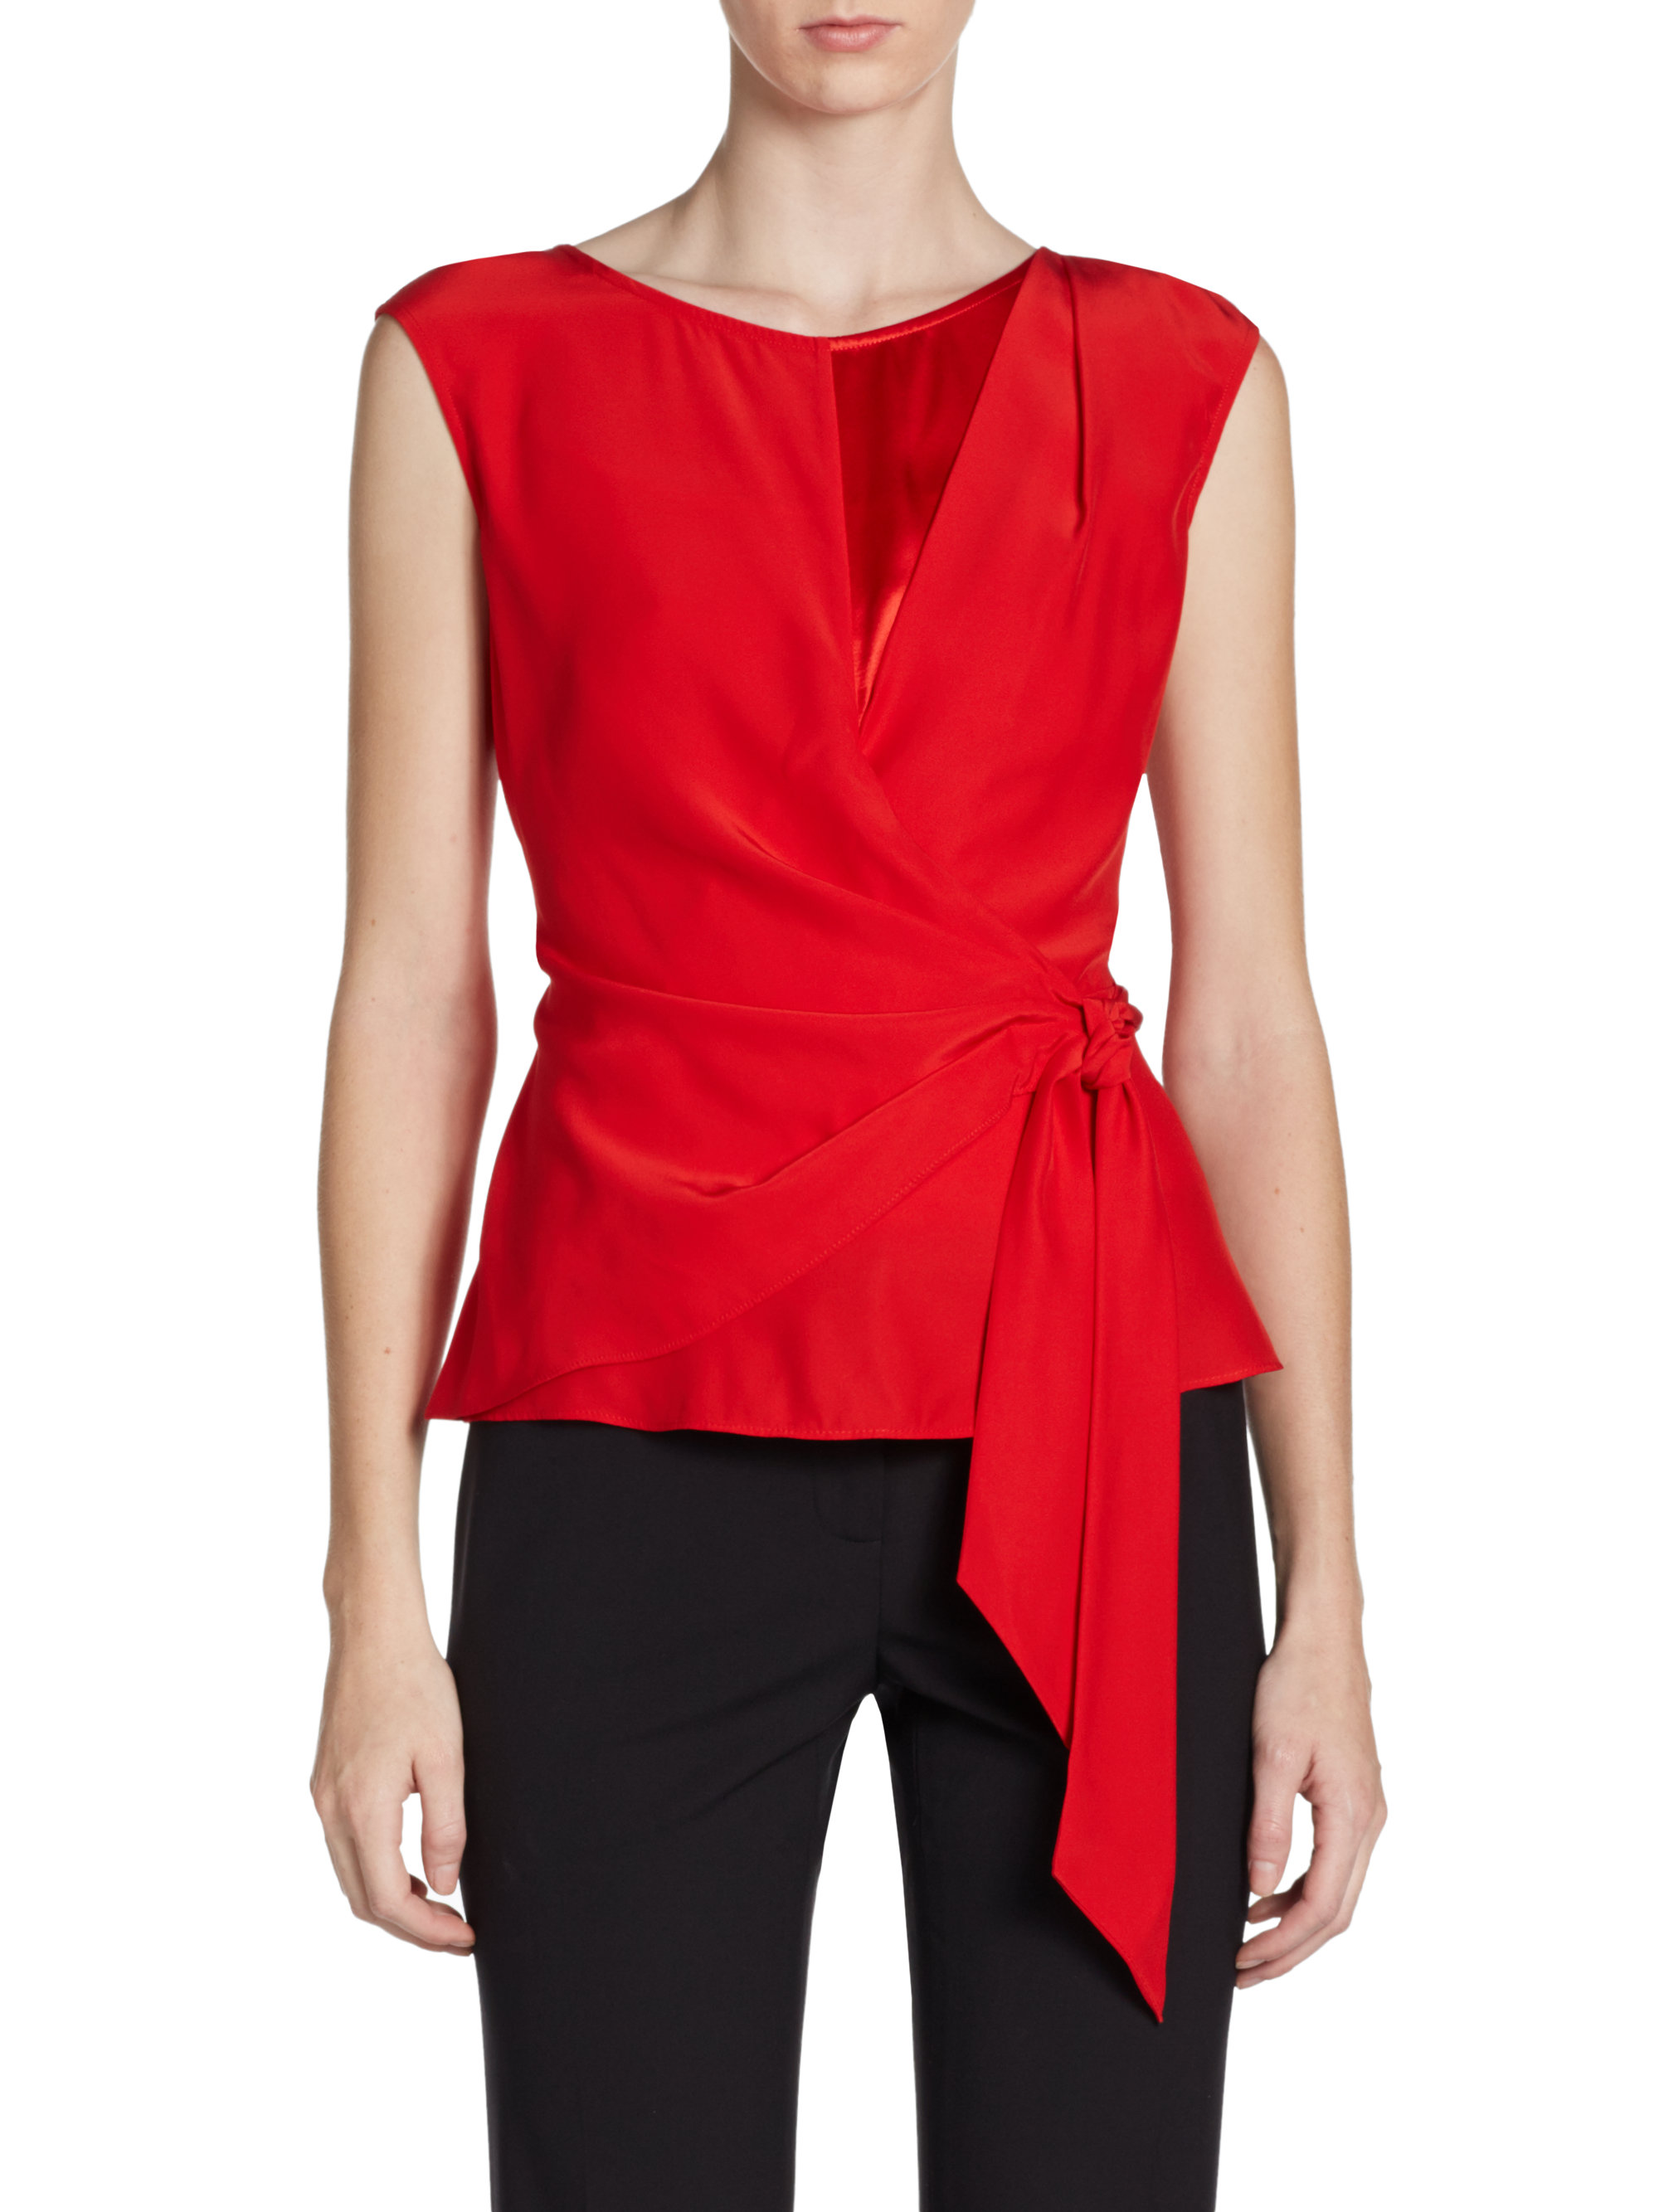 148 Best Images About Craft Ideas For Girls On Pinterest: Lafayette 148 New York Side Tie Silk Top In Red